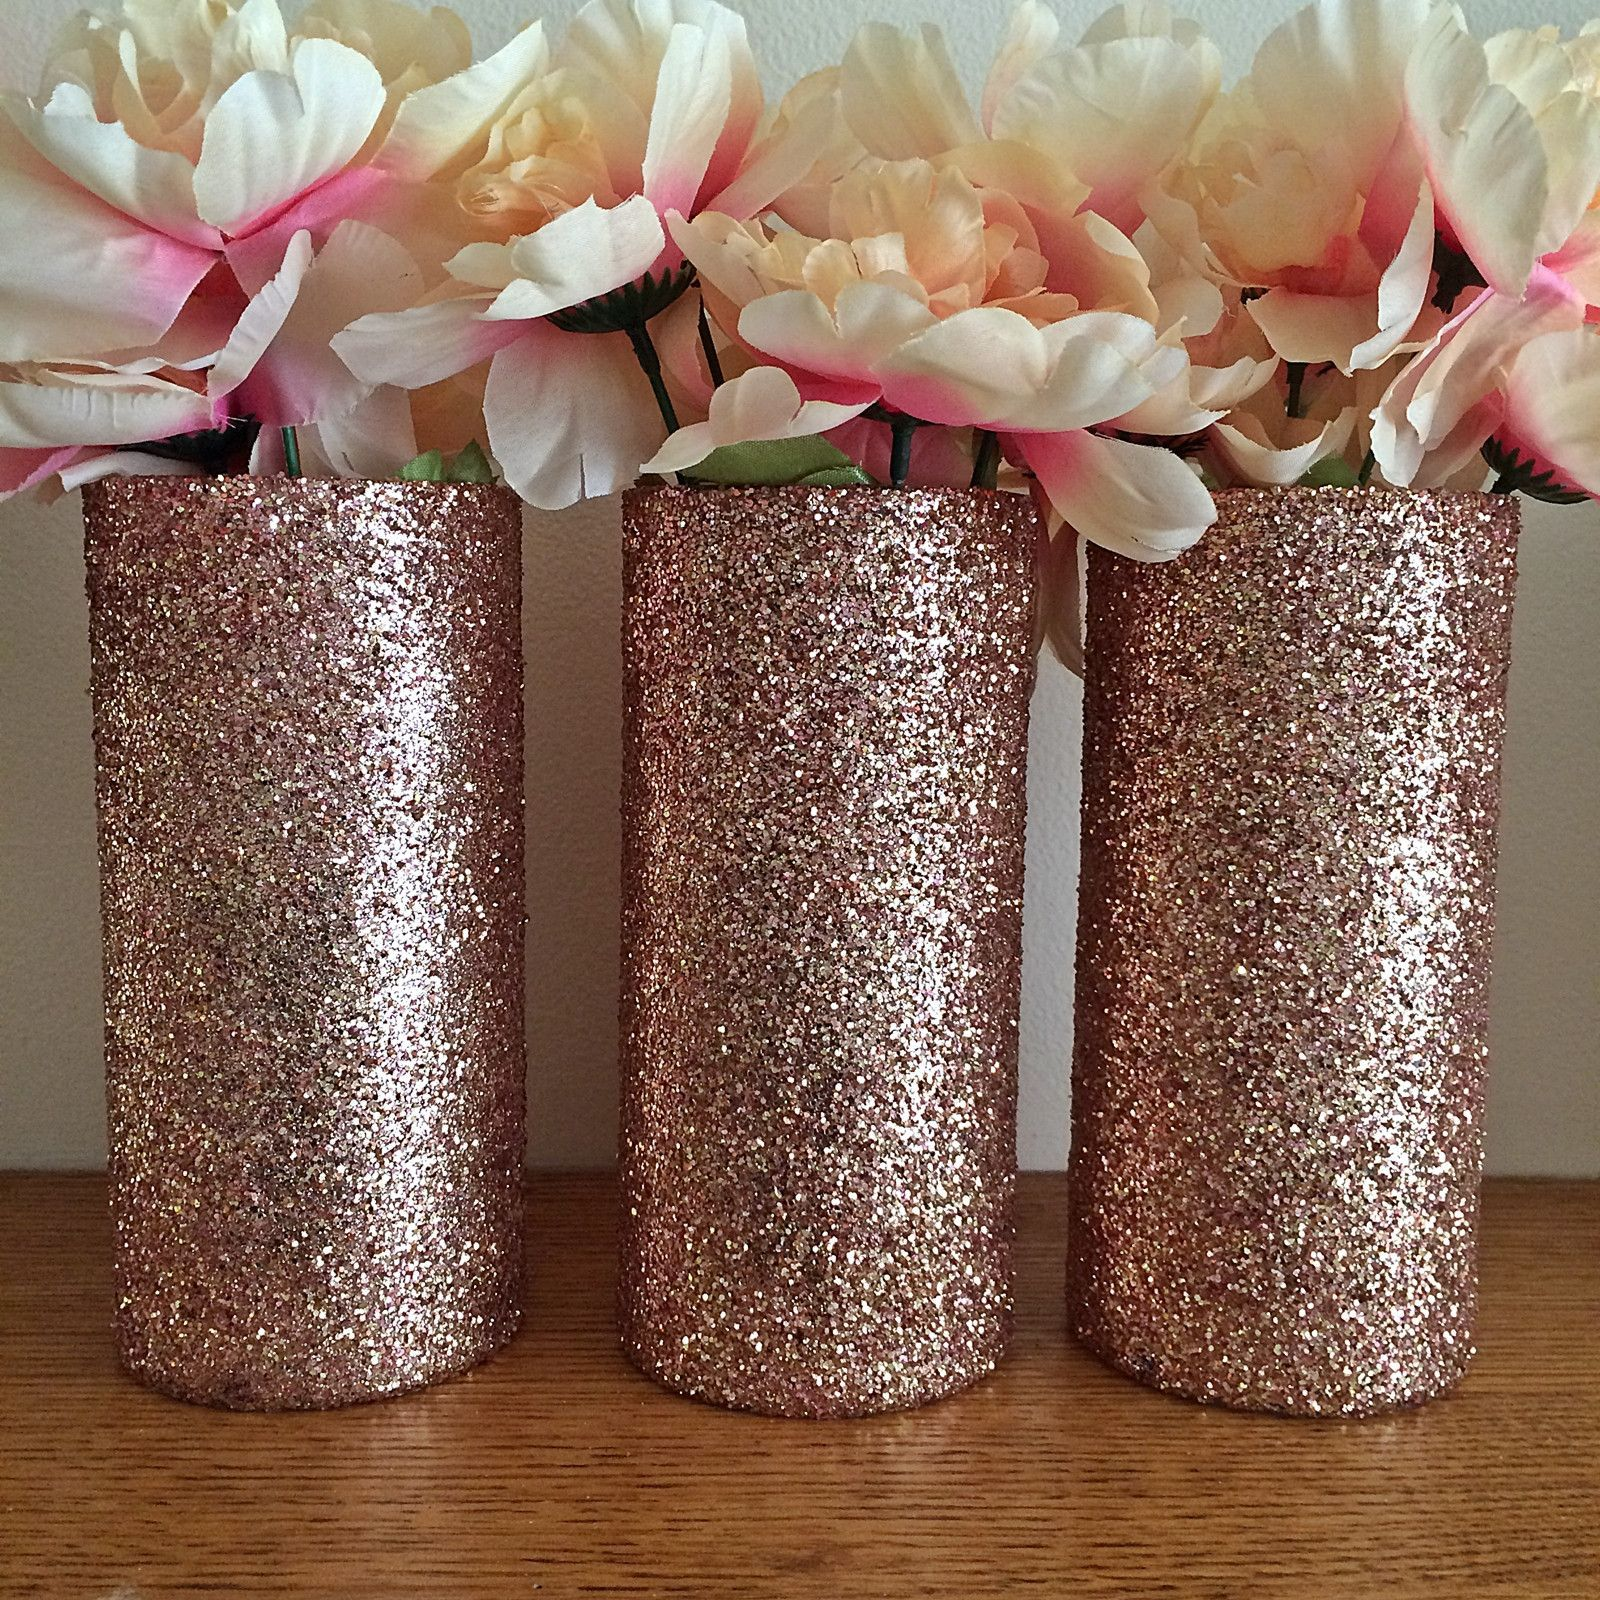 Set of 3 Beautiful Rose Gold Glitter coated Glass Cylinder Vases